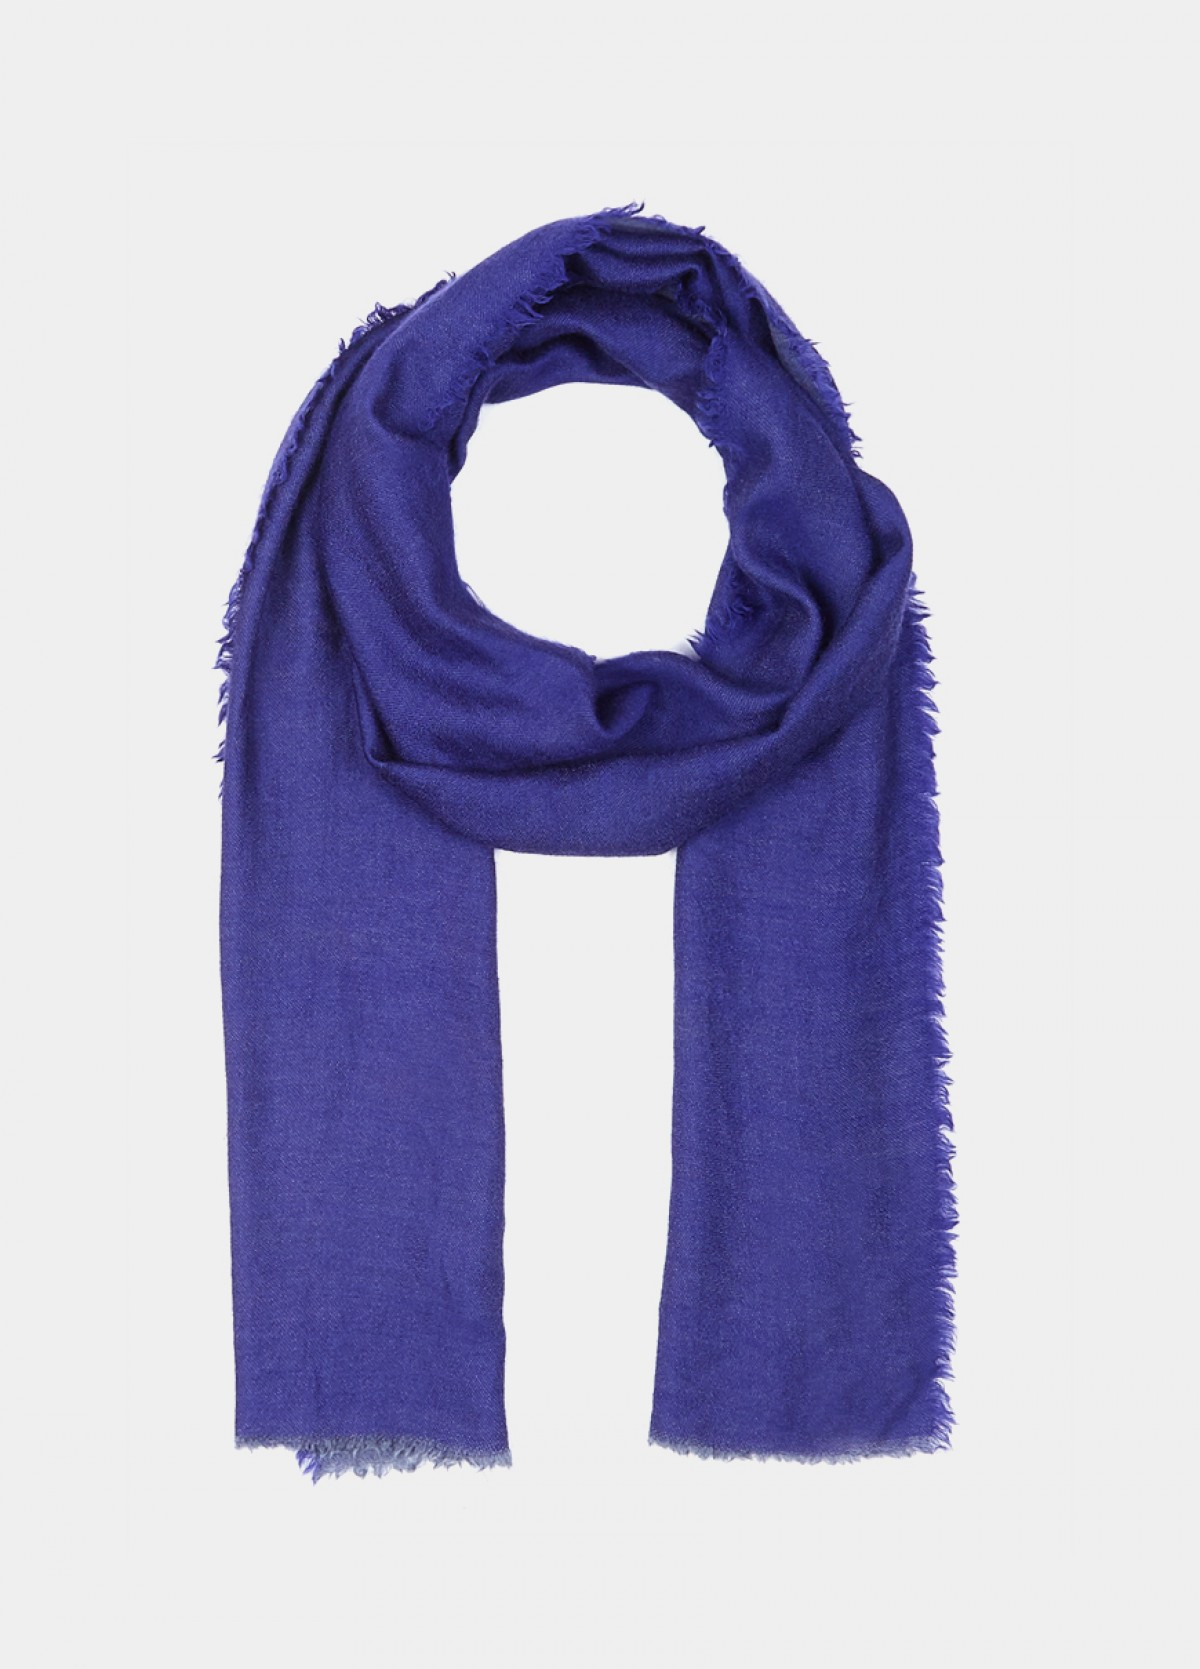 The Reversible Wool Stole